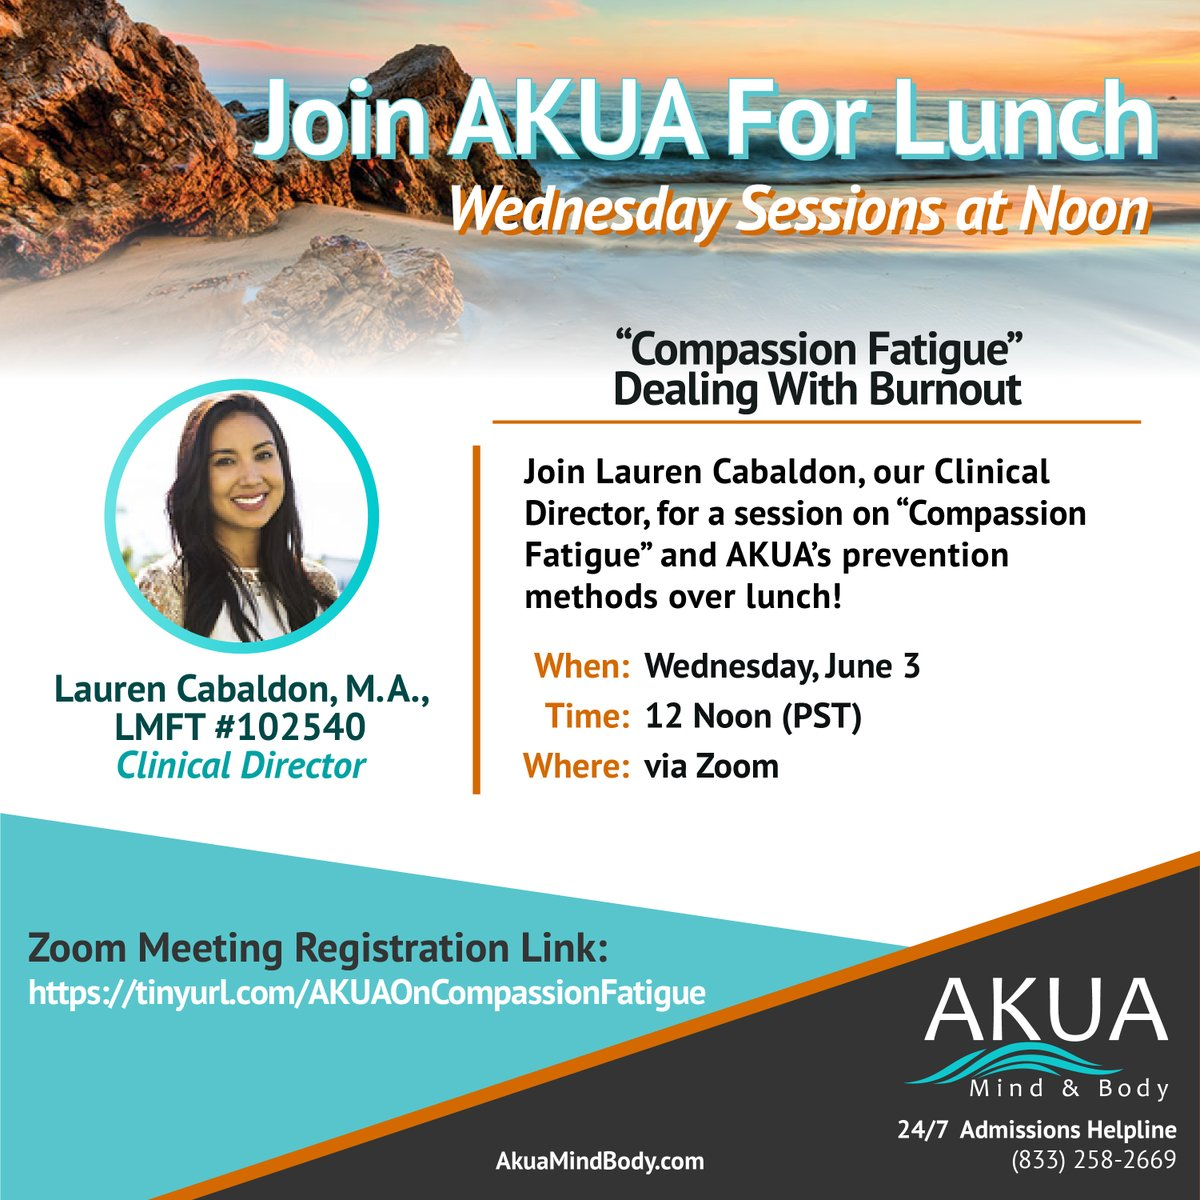 """Join AKUA for Lunch: """"Compassion Fatigue: Dealing With Burnout"""" Wednesday, June 3 at Noon! Register in advance here: https://tinyurl.com/AKUAOnCompassionFatigue…  We look forward to seeing you!  #virtualmeetings #compassionfatigue #akuastrong #mentalhealthawareness #substanceabusepic.twitter.com/NPmGbS9V6h"""